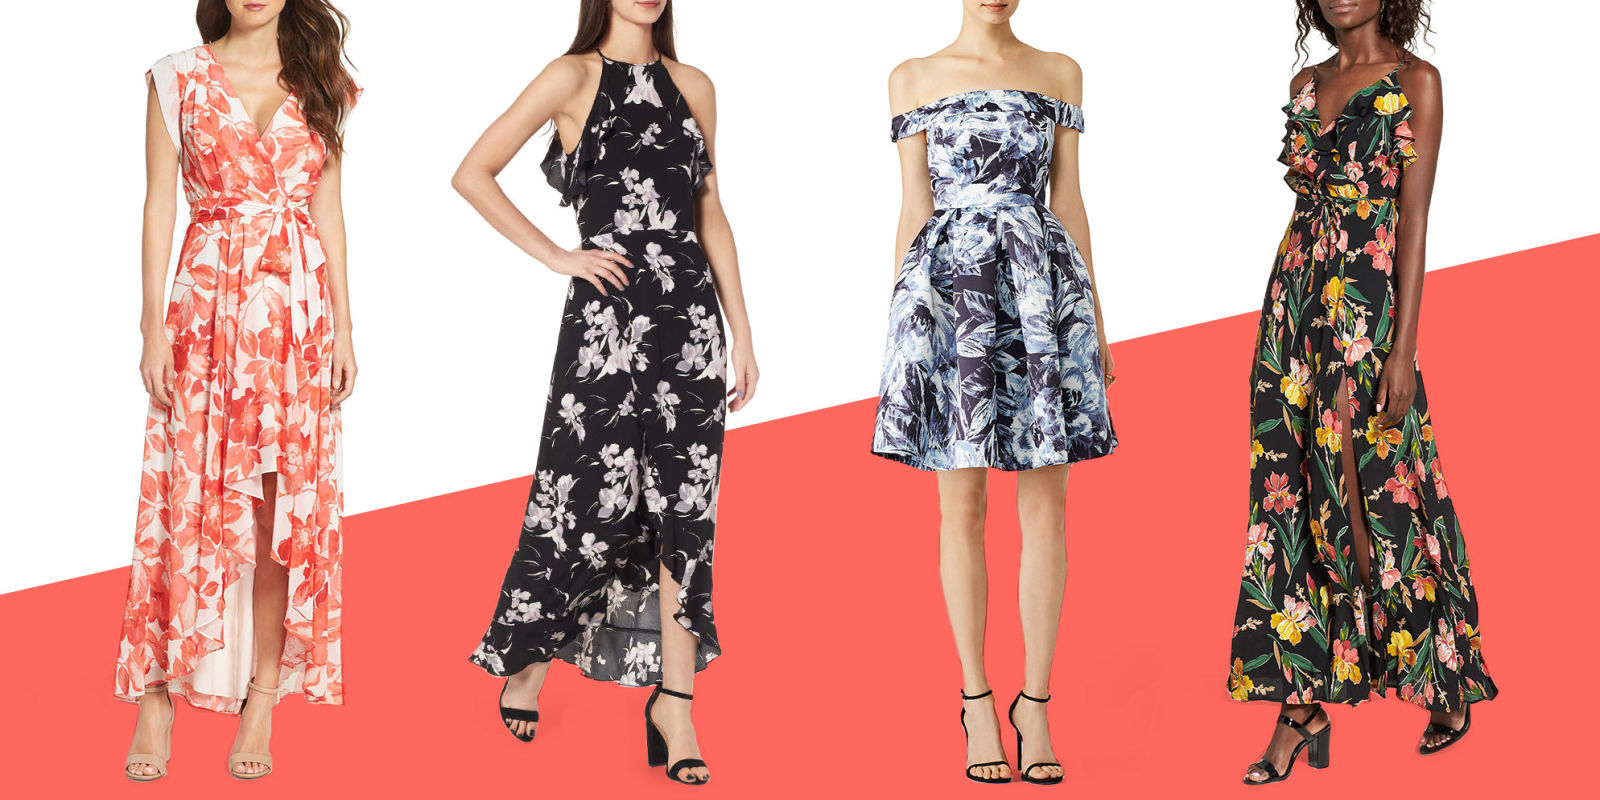 12 best dresses to wear to a wedding in fall 2017 for Best dressed wedding guest 2017